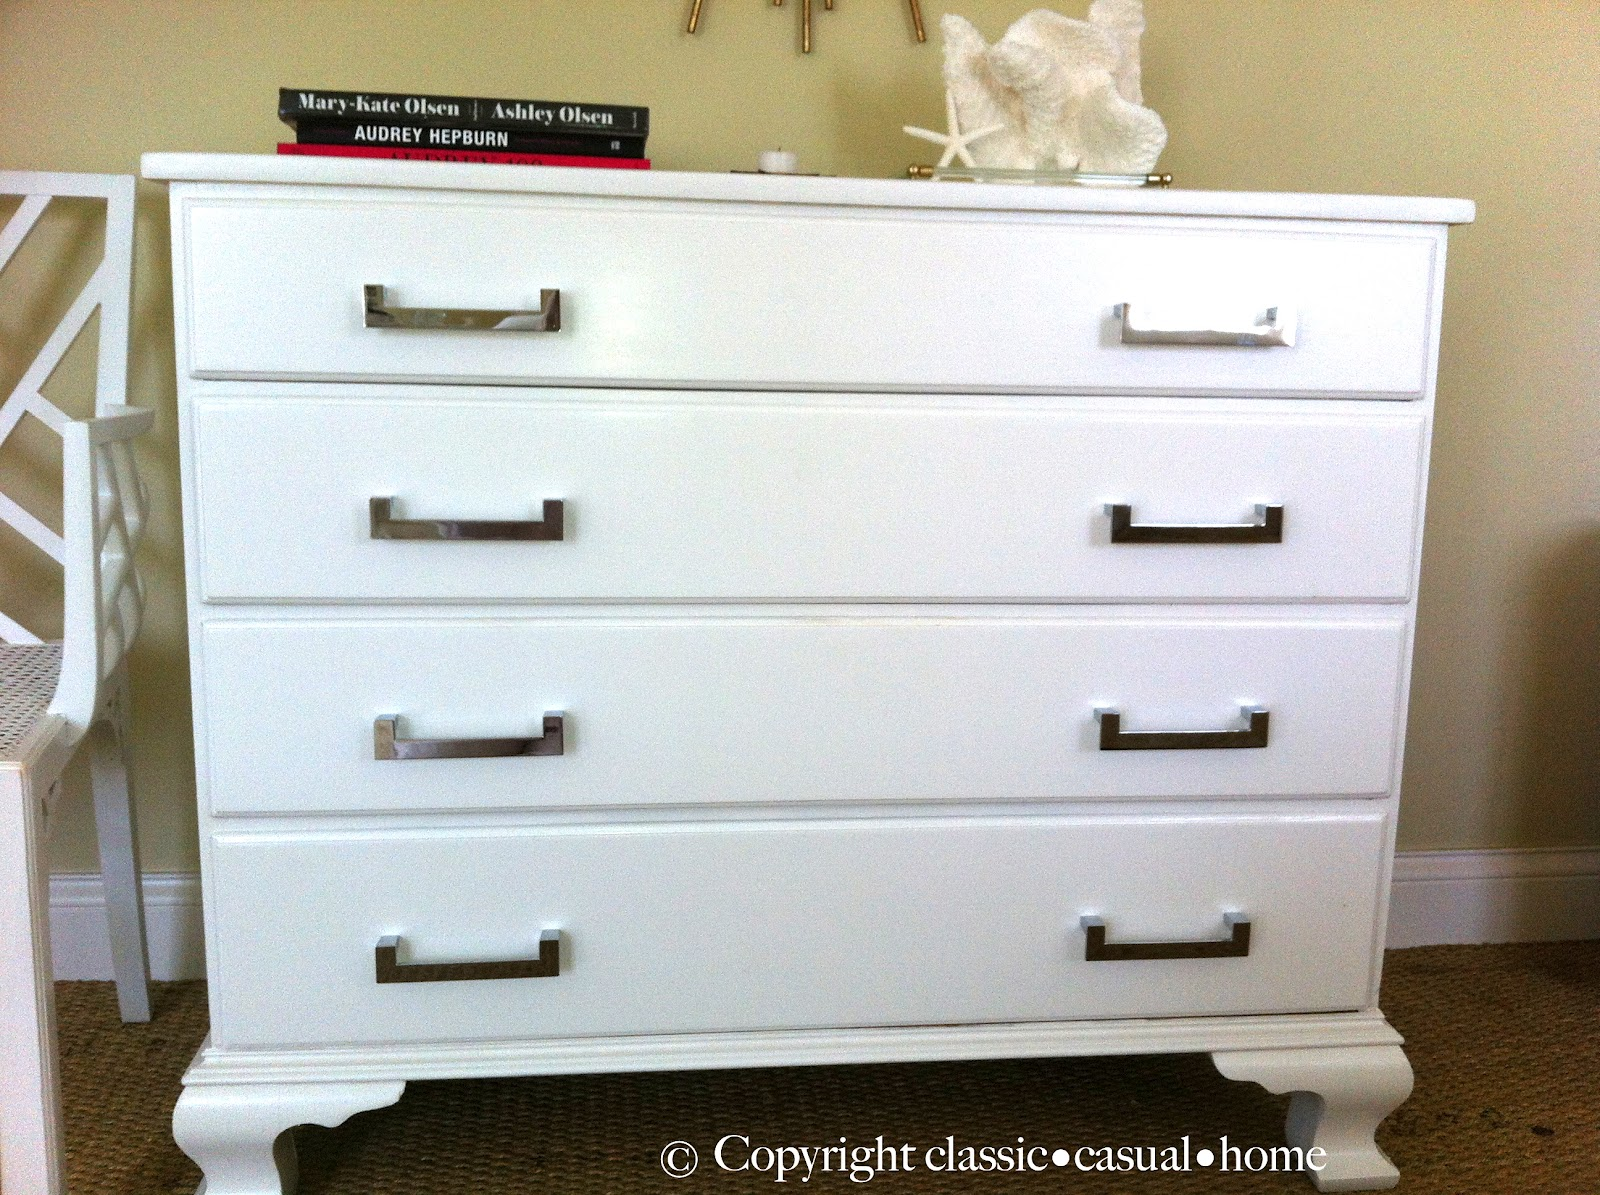 classic • casual • home: claire's fresh furniture makeovers